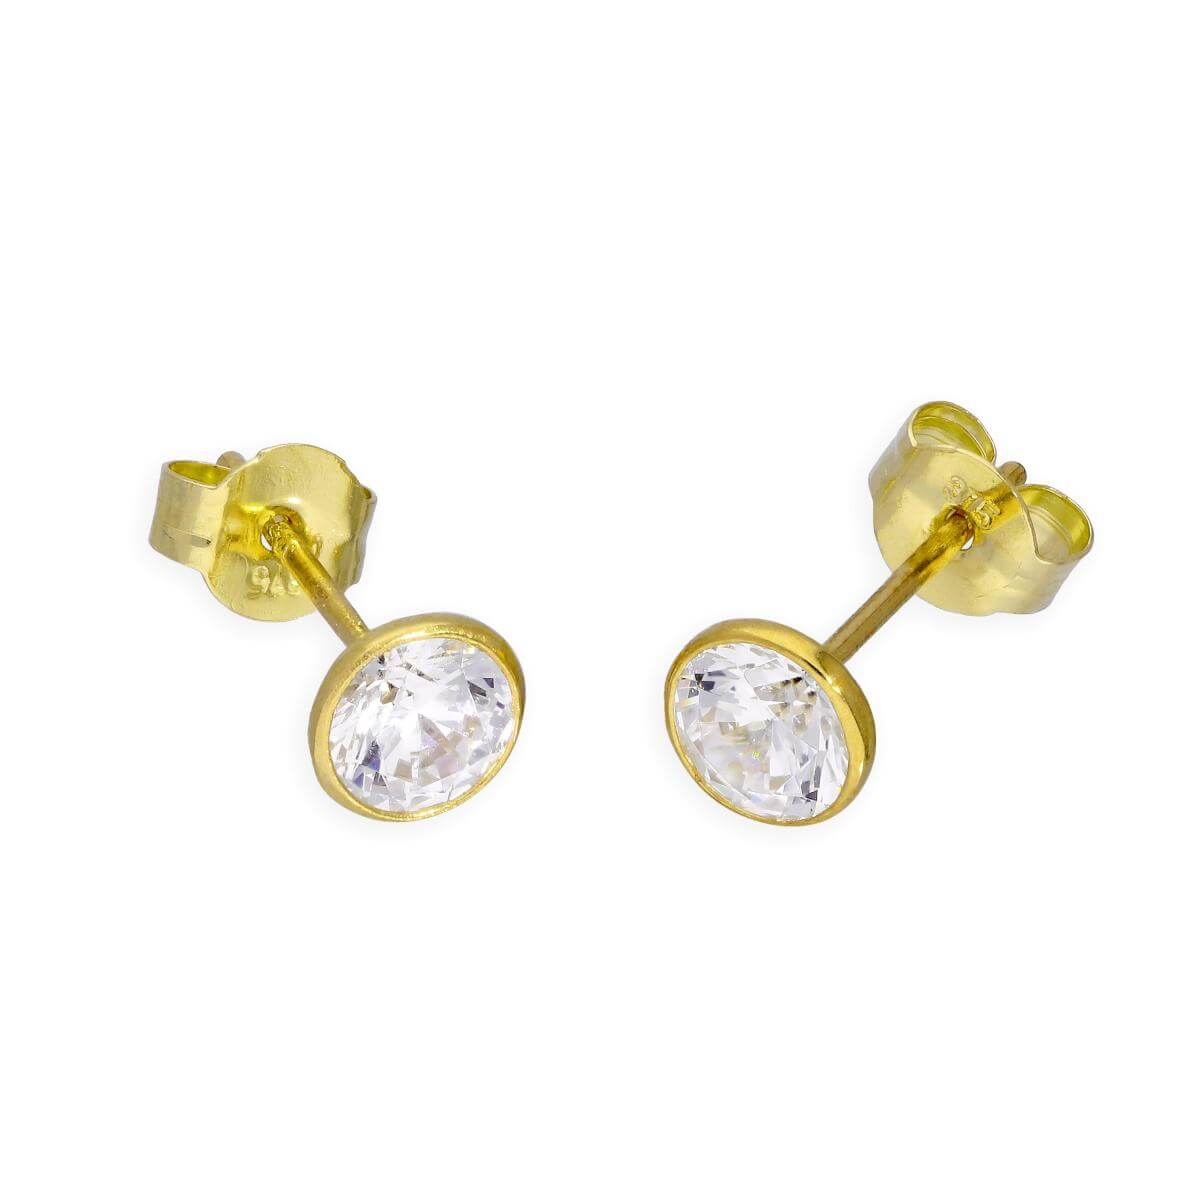 9ct Gold & Clear CZ Crystal 5mm Circle Stud Earrings